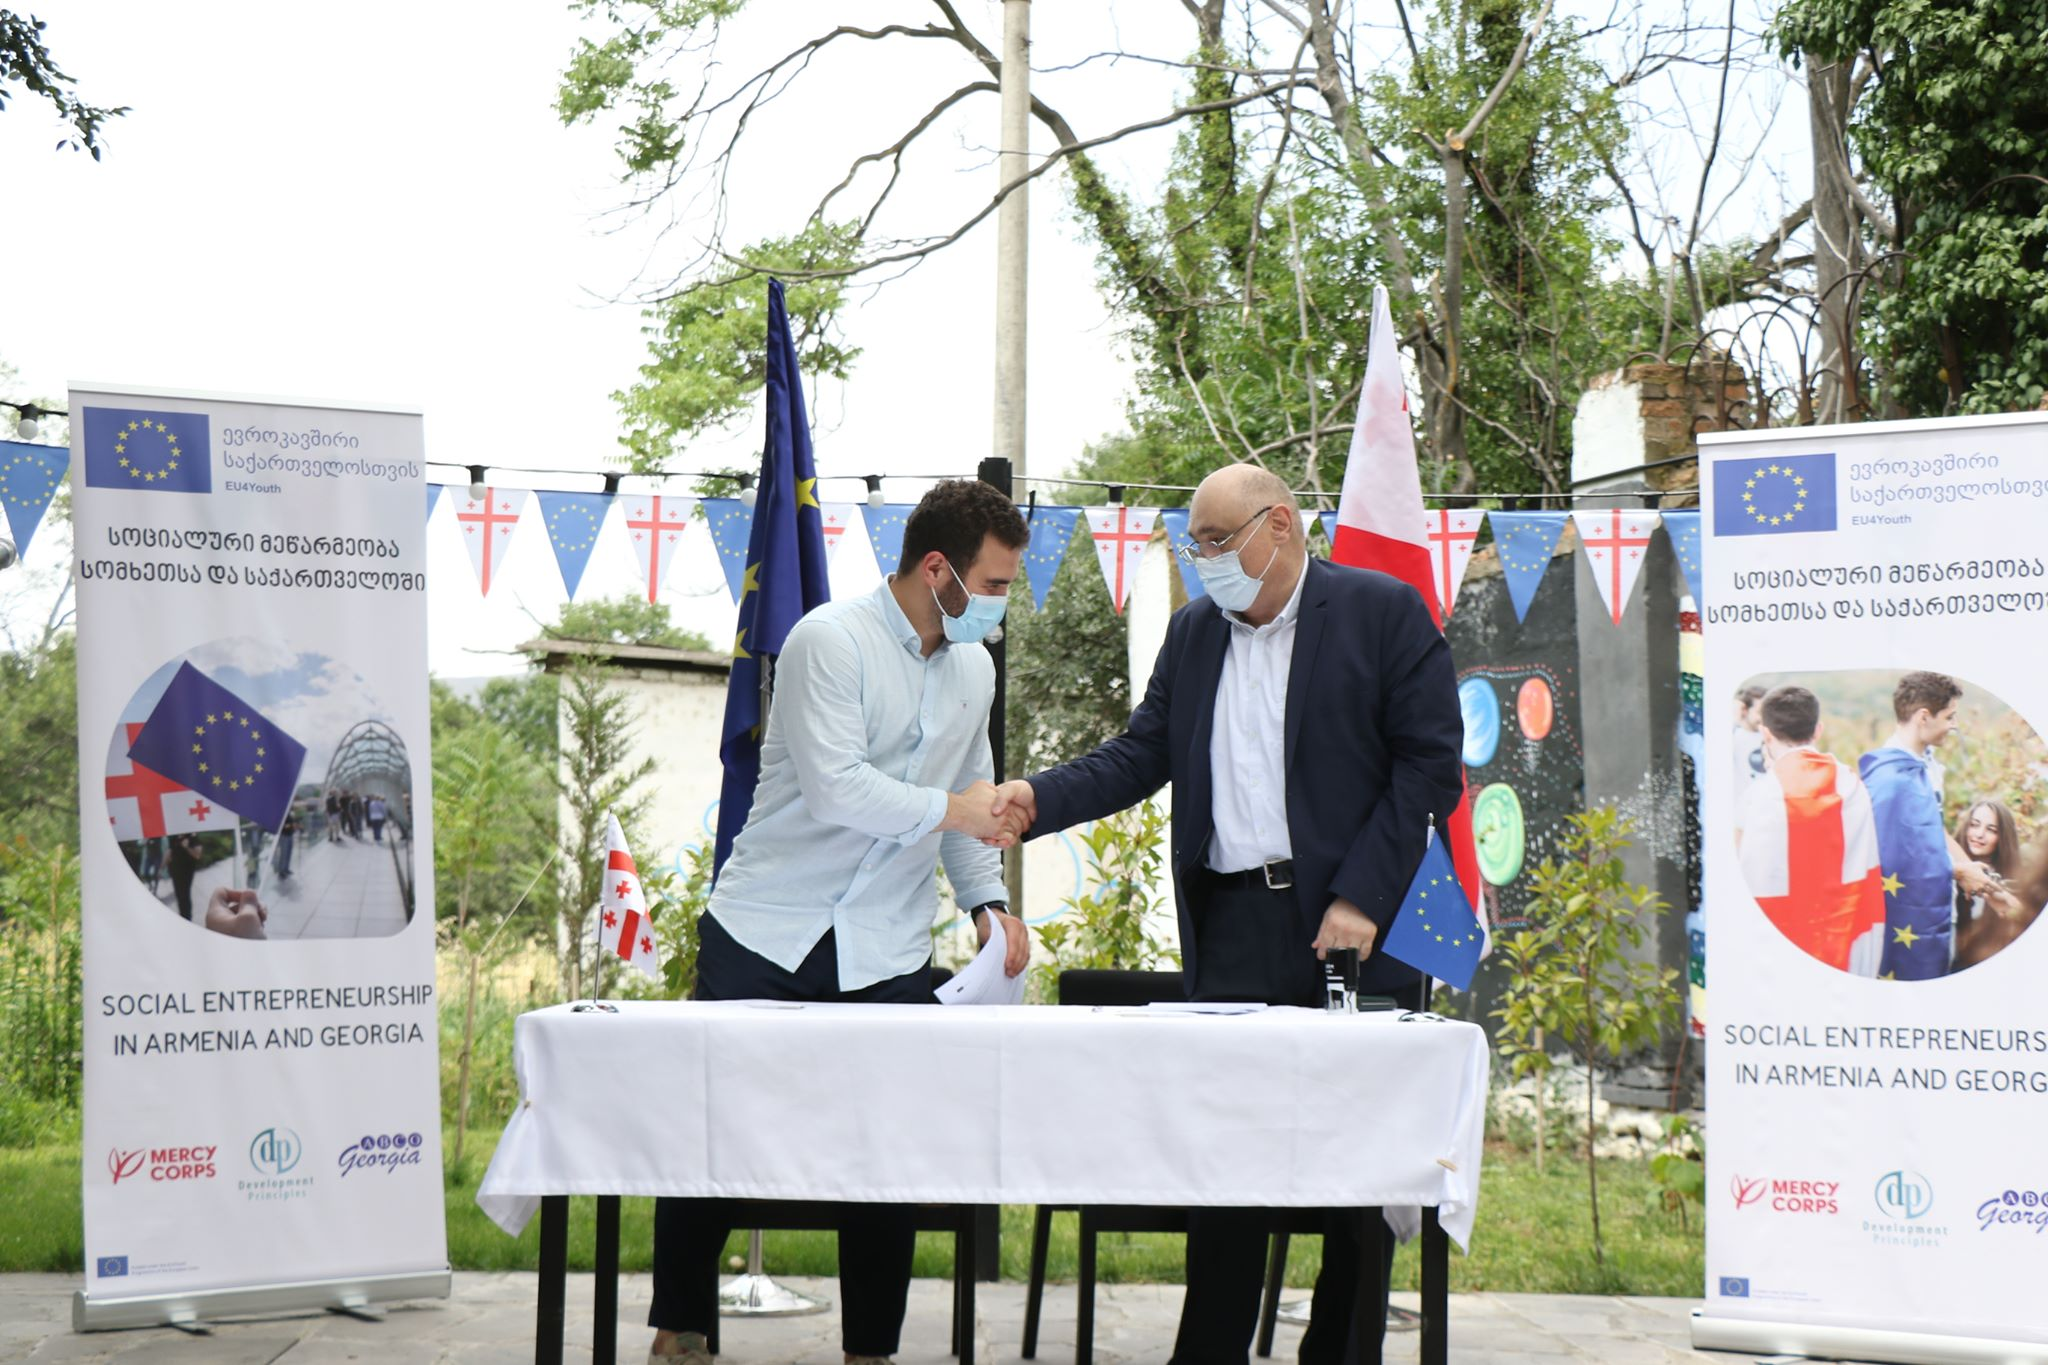 EU awards grants to youth projects to promote social entrepreneurship in Georgia